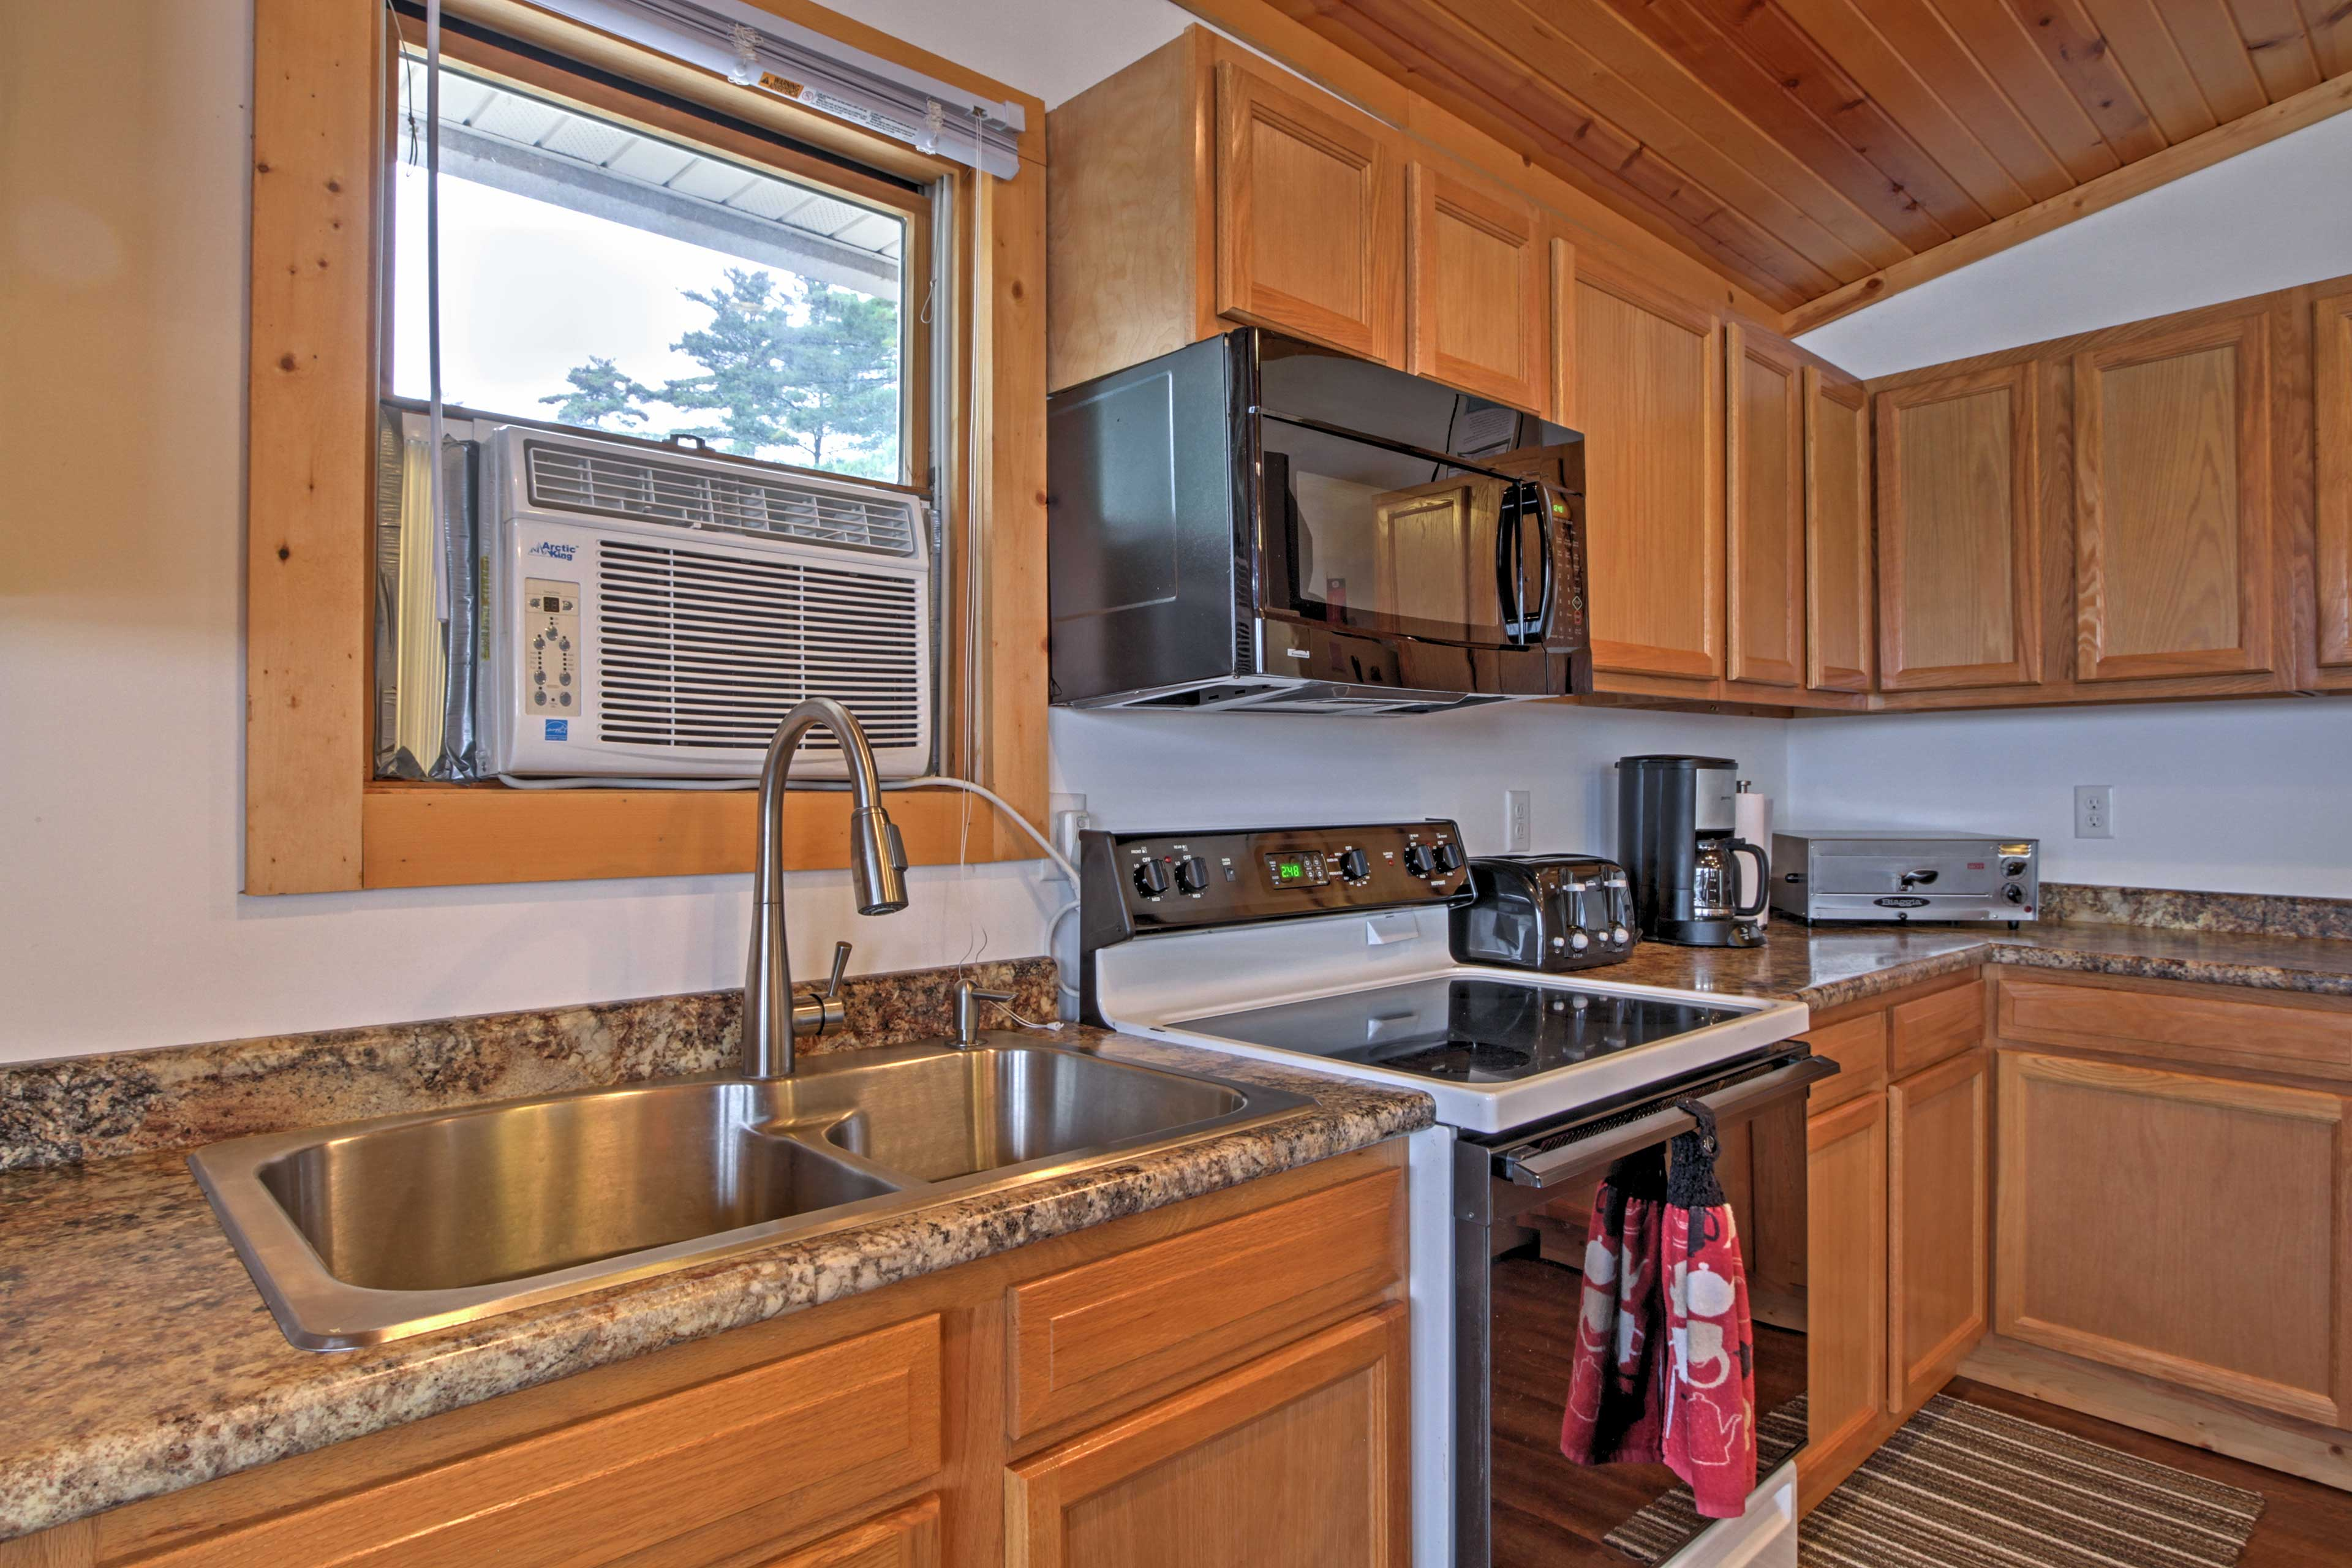 Cook at home with ease in the fully equipped kitchen with modern appliances.